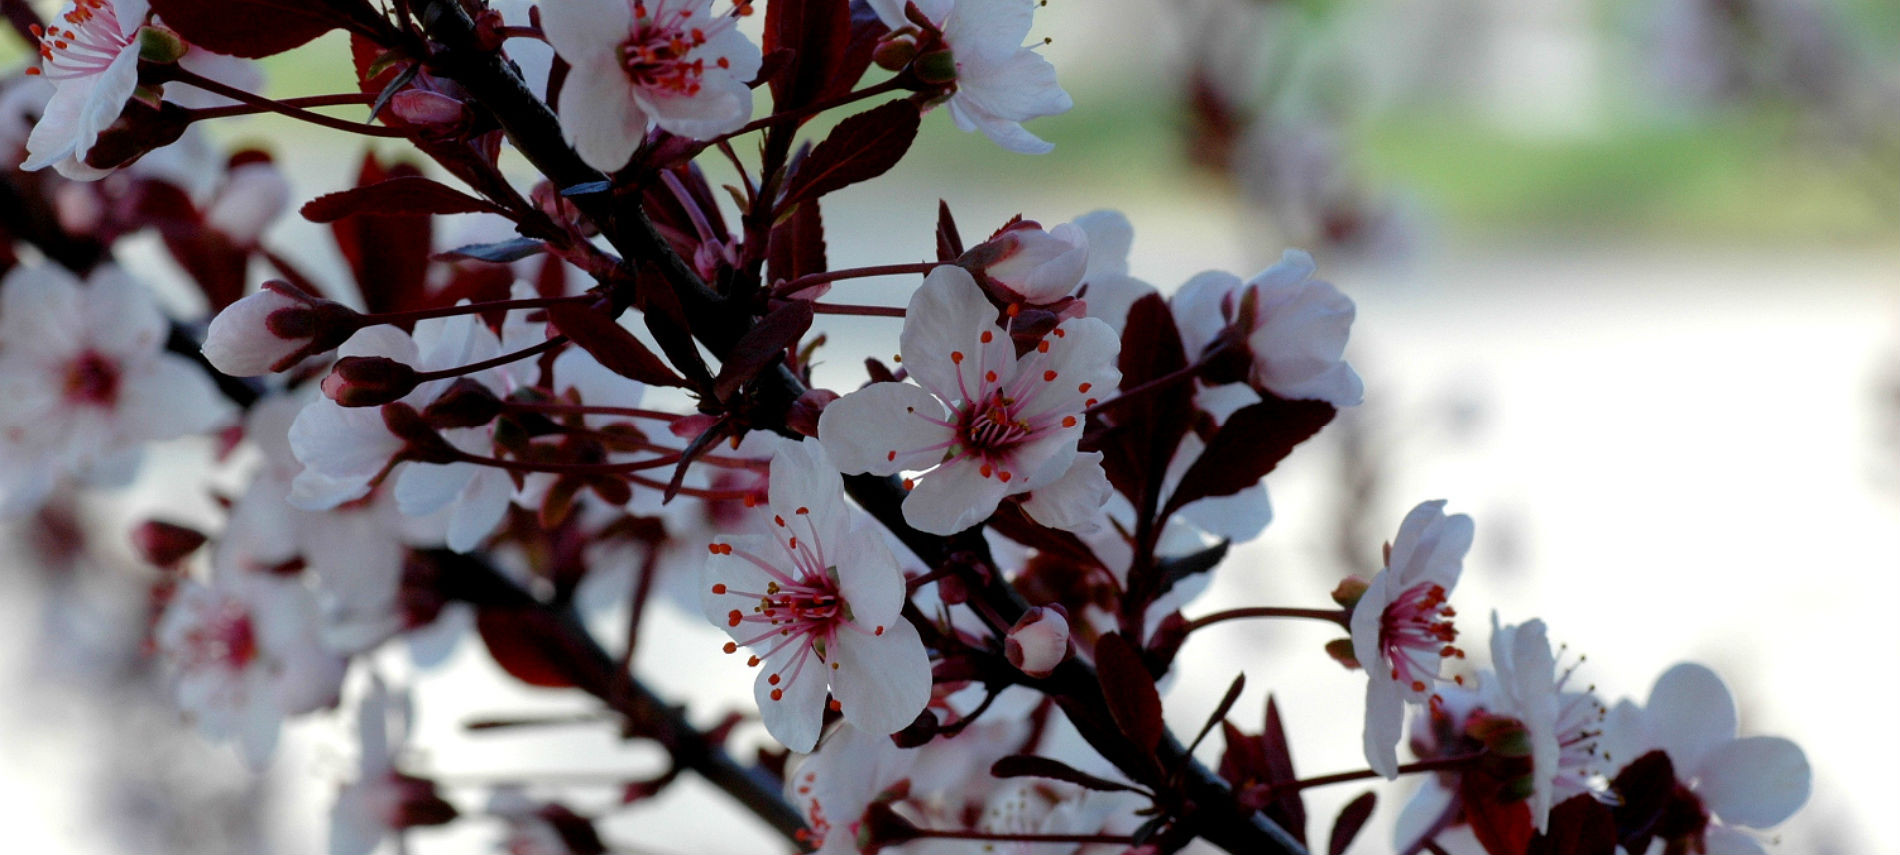 Close-up of cherry tree blossoms: white flowers with bright red stamen